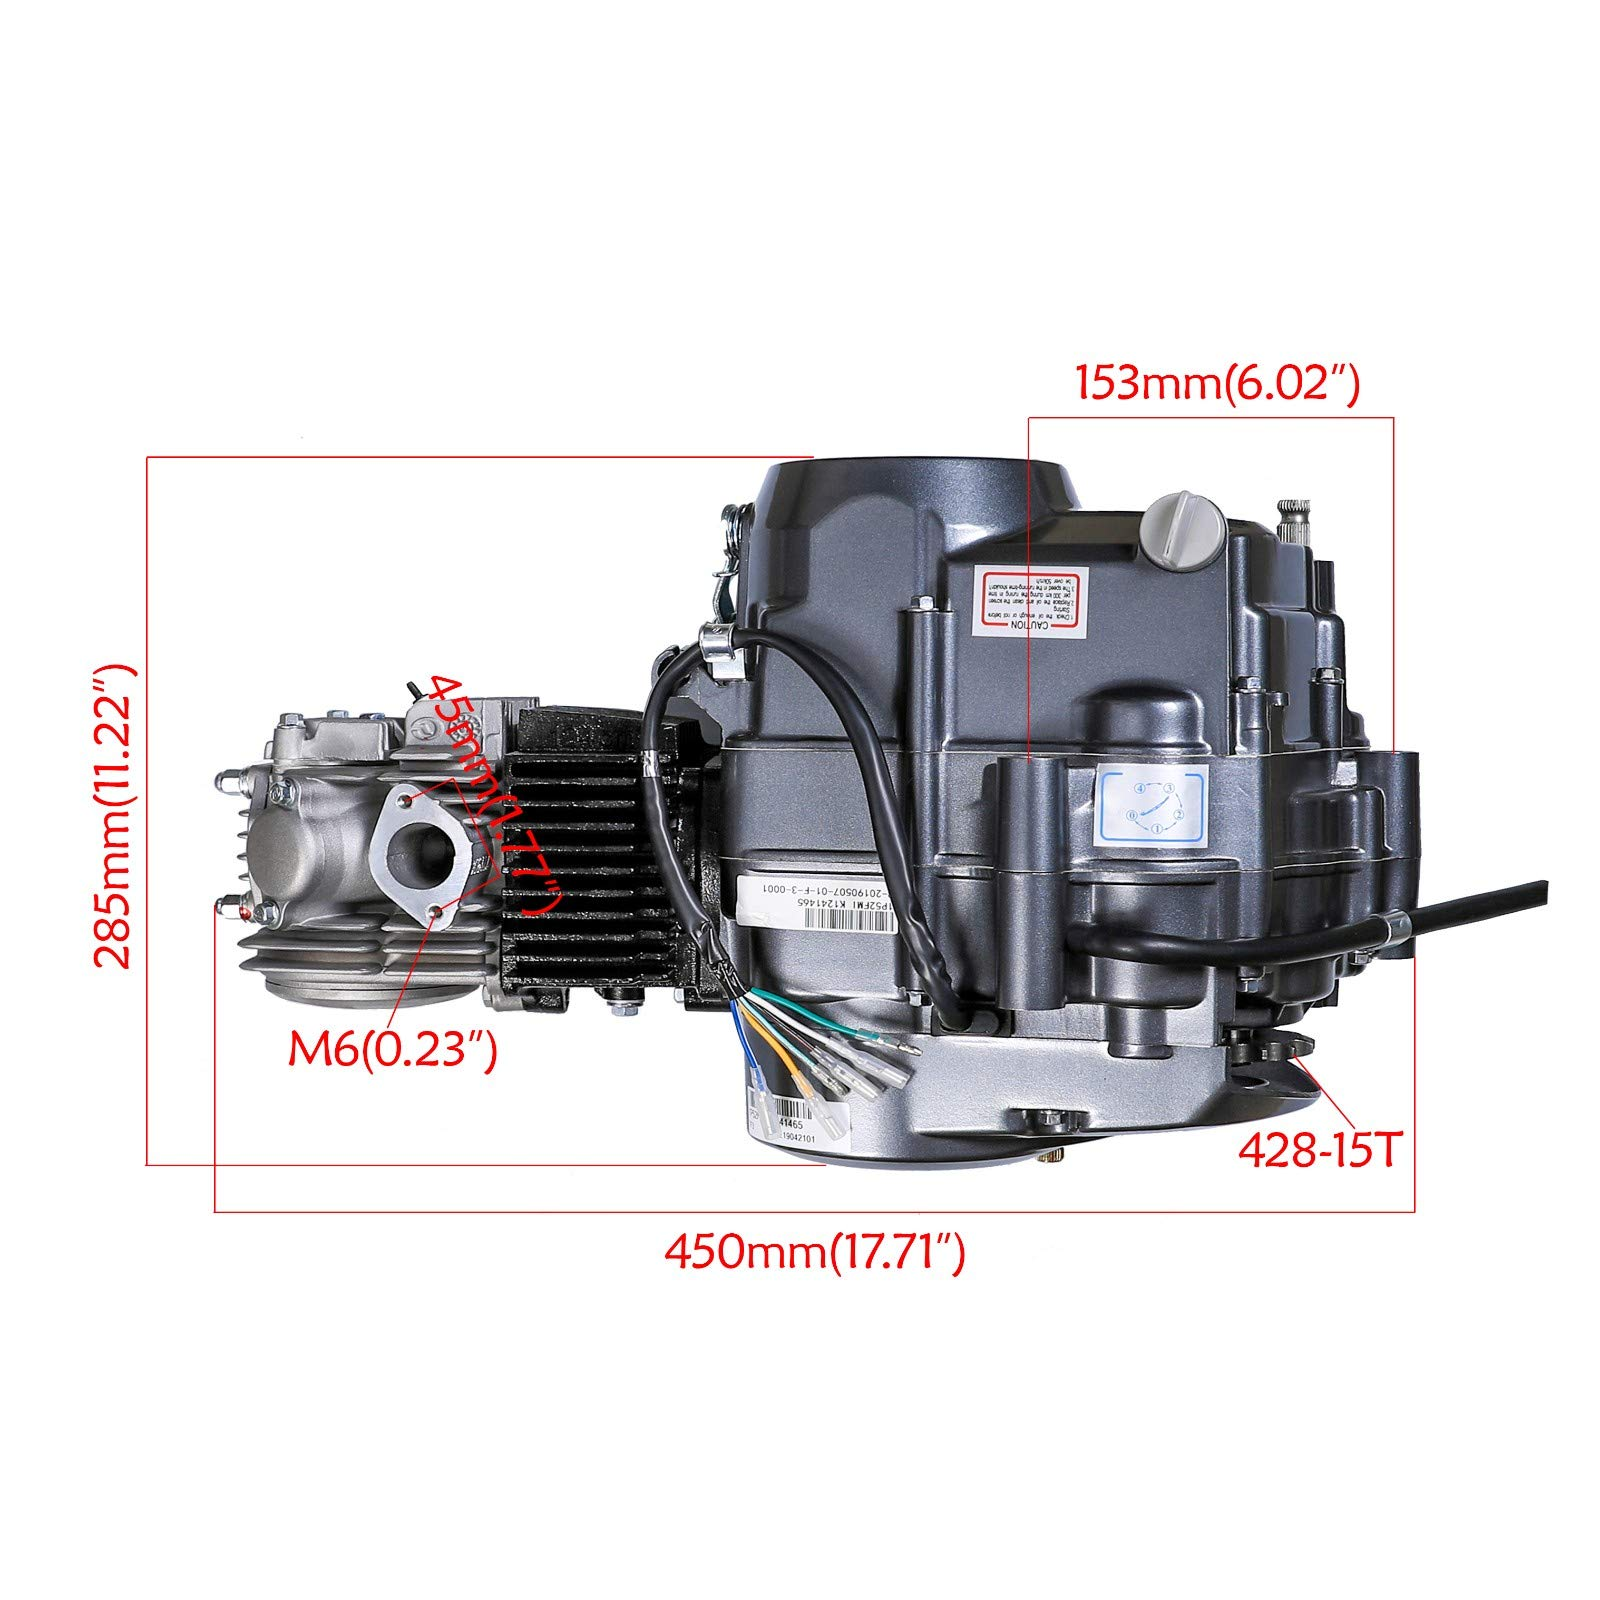 125cc 4-Stroke Engine Motor Single Cylinder Air-Cooled clutch operated by hand Motor Engine with Wiring Harness for Honda CRF50 Z50 CRF70